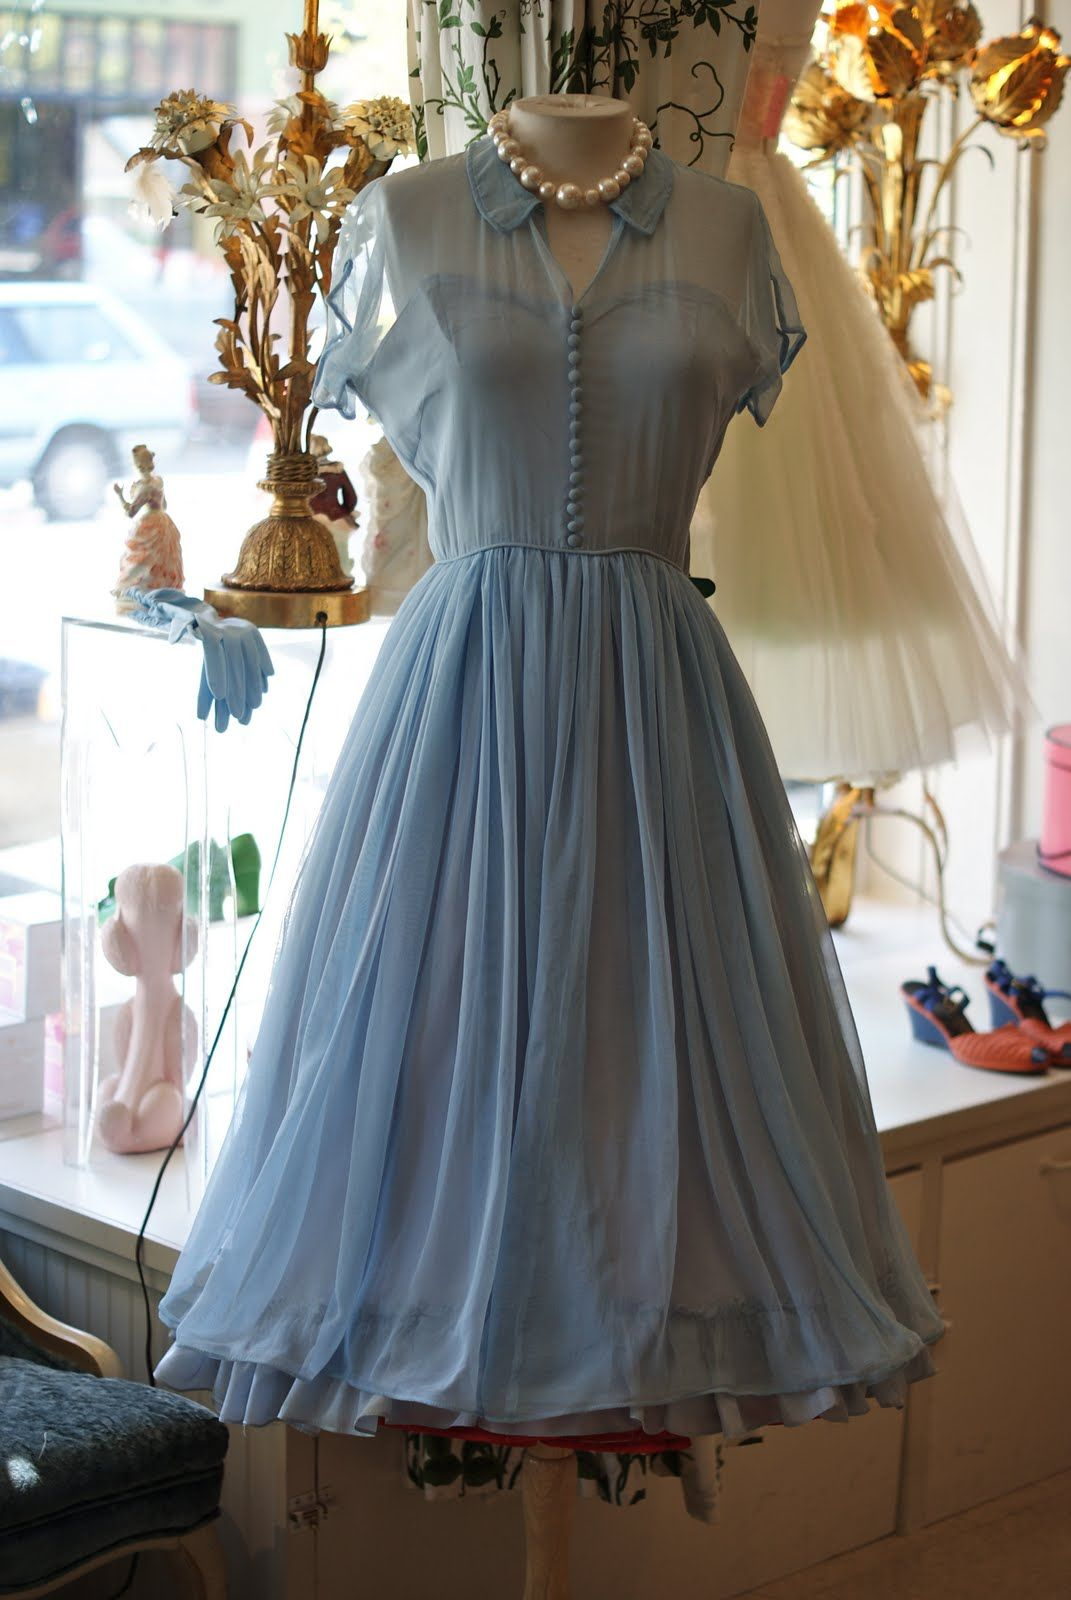 us Emma Domb powder blue prom dress dress Pinterest Prom